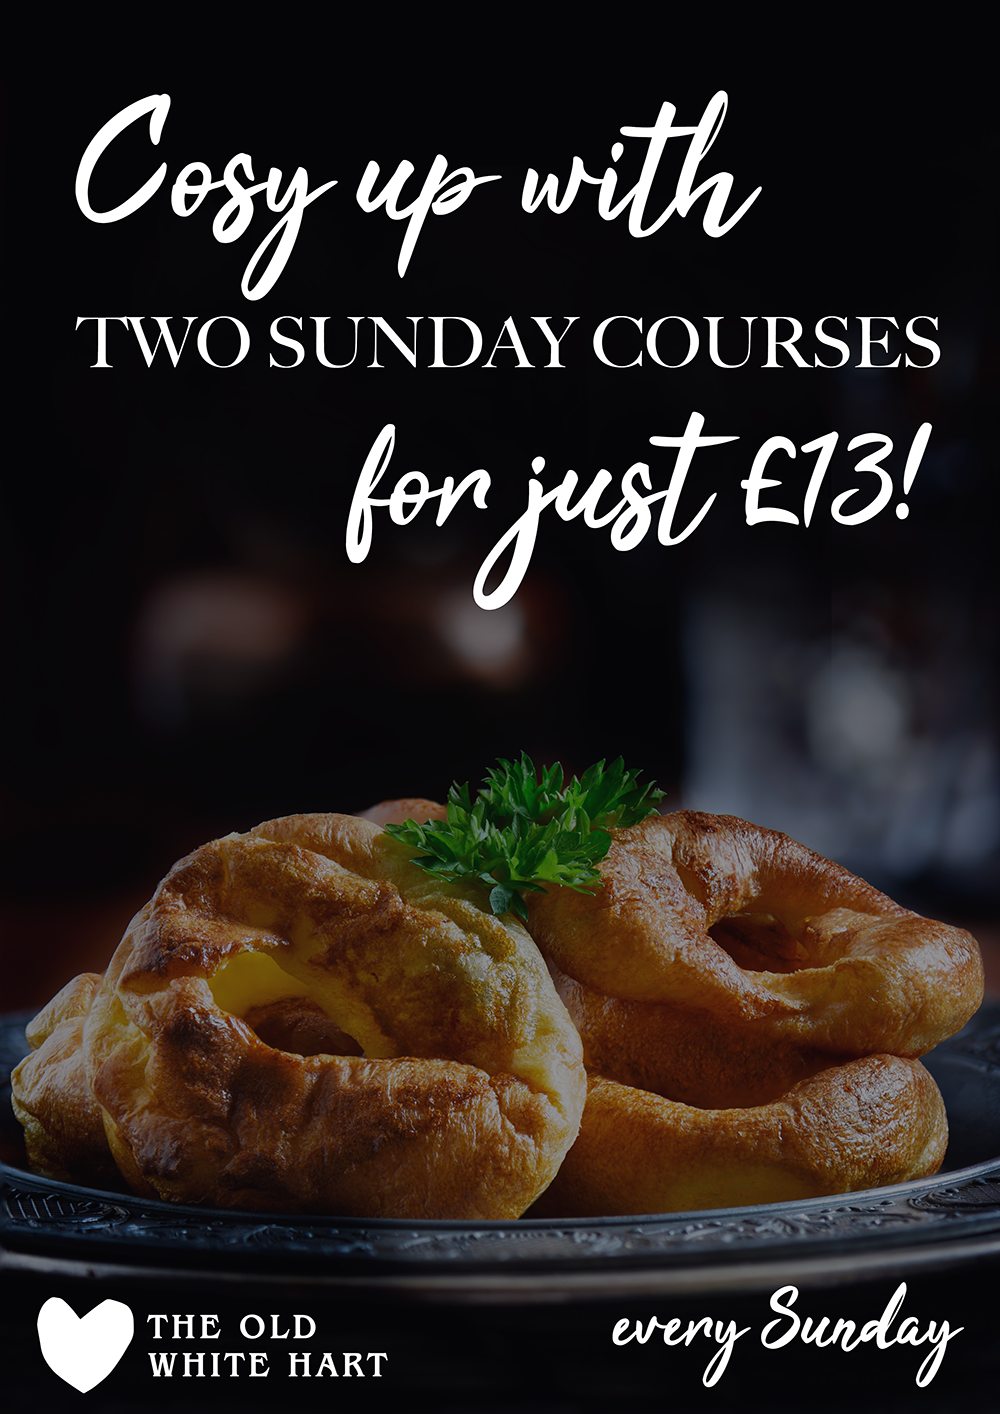 Cosy up with someone this sunday… - You can come along and enjoy two courses from our Sunday menu…every Sunday, for just £13!Come and enjoy one of our succulent Sunday roasts, with a warming starter or a tempting delicious dessert!Every Sunday, from 12pm till 9pm